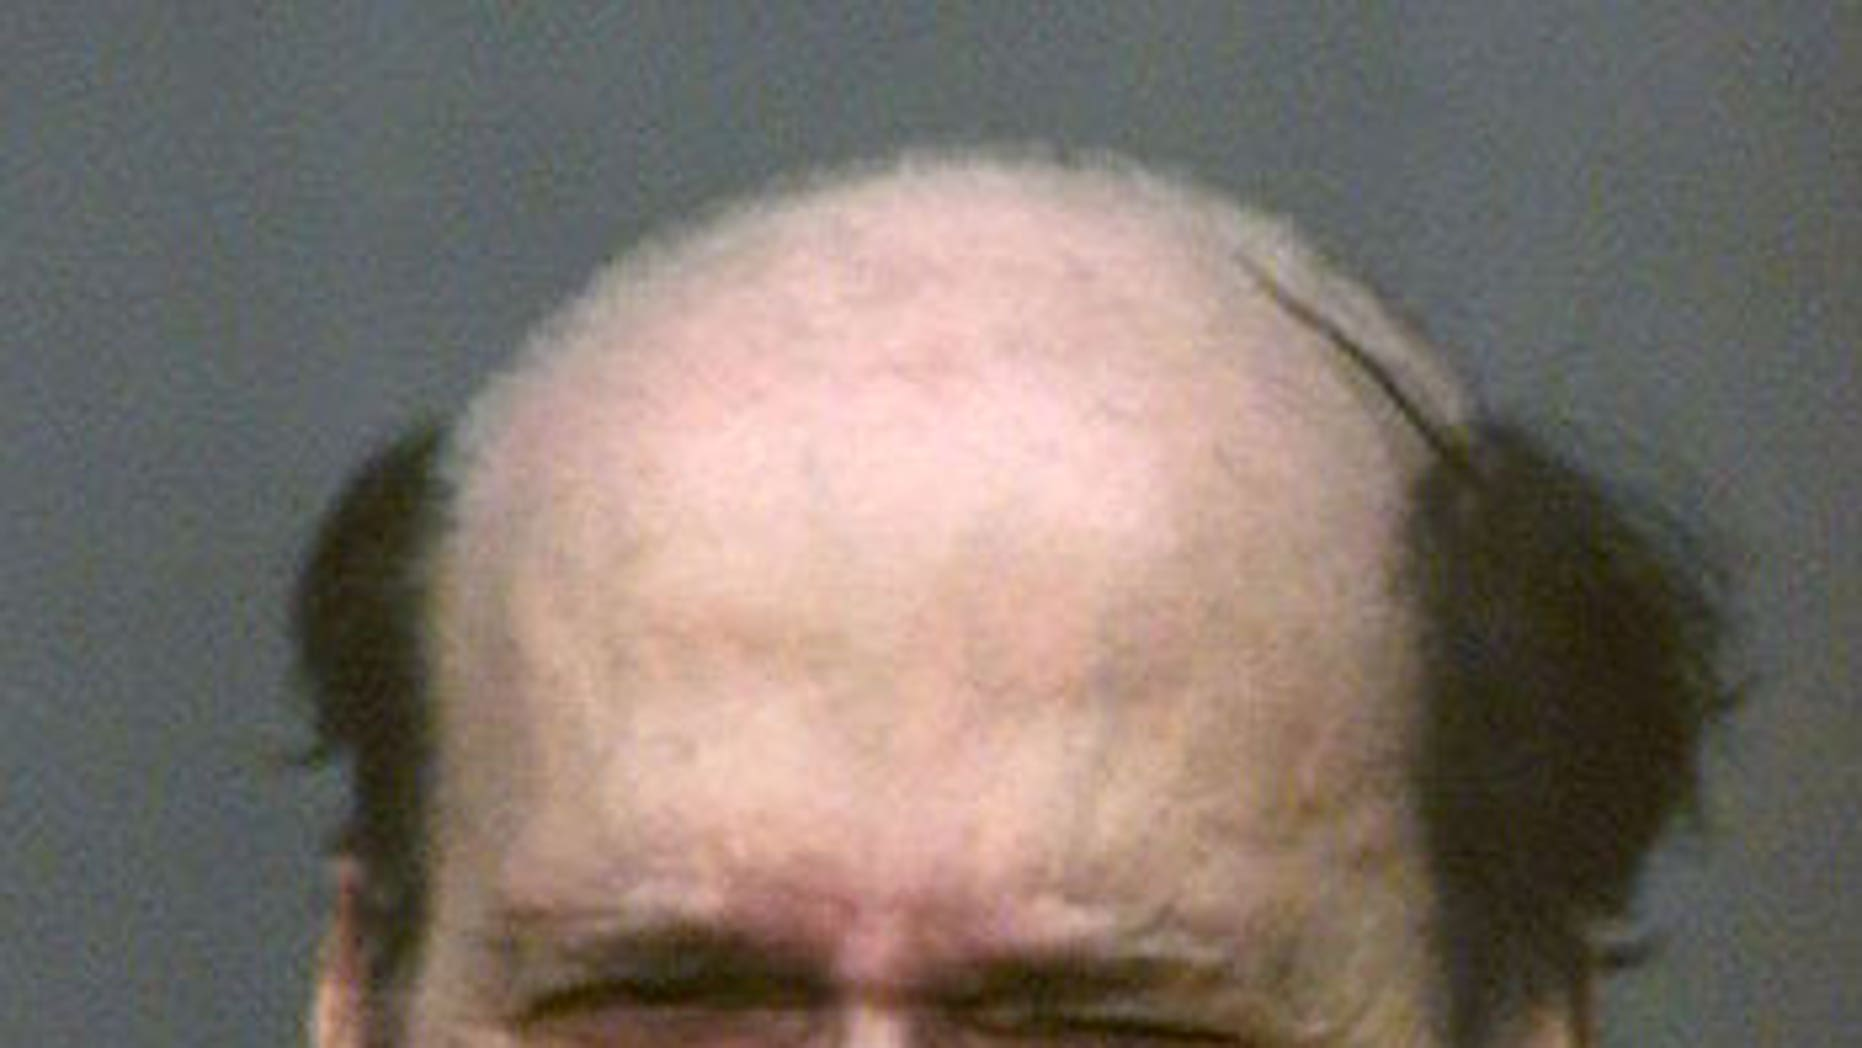 Sept. 25, 2008: Tony Alamo, evangelist and convicted tax evader, in his booking photo.